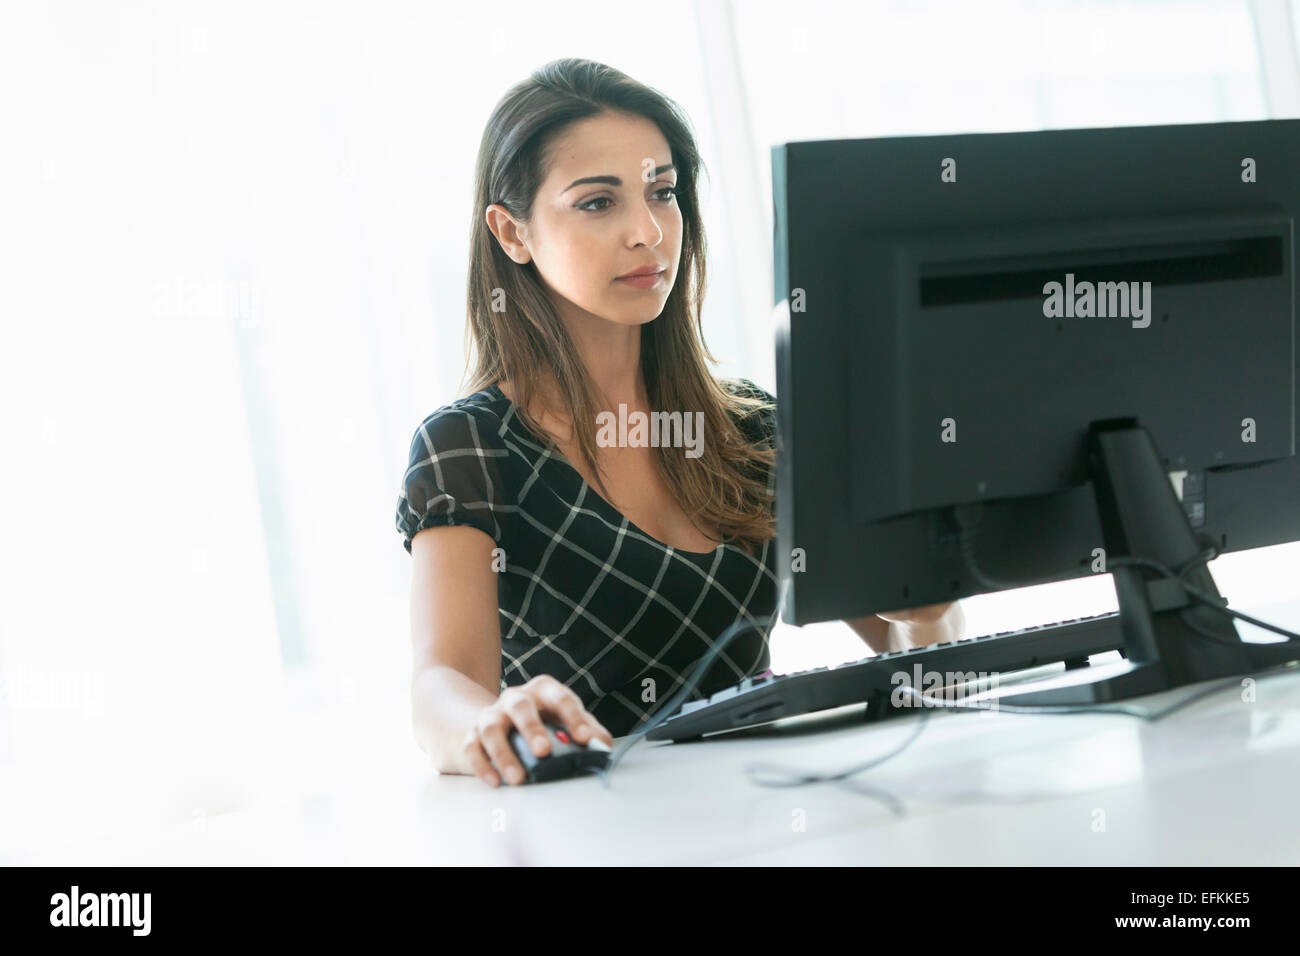 Woman using computer - Stock Image